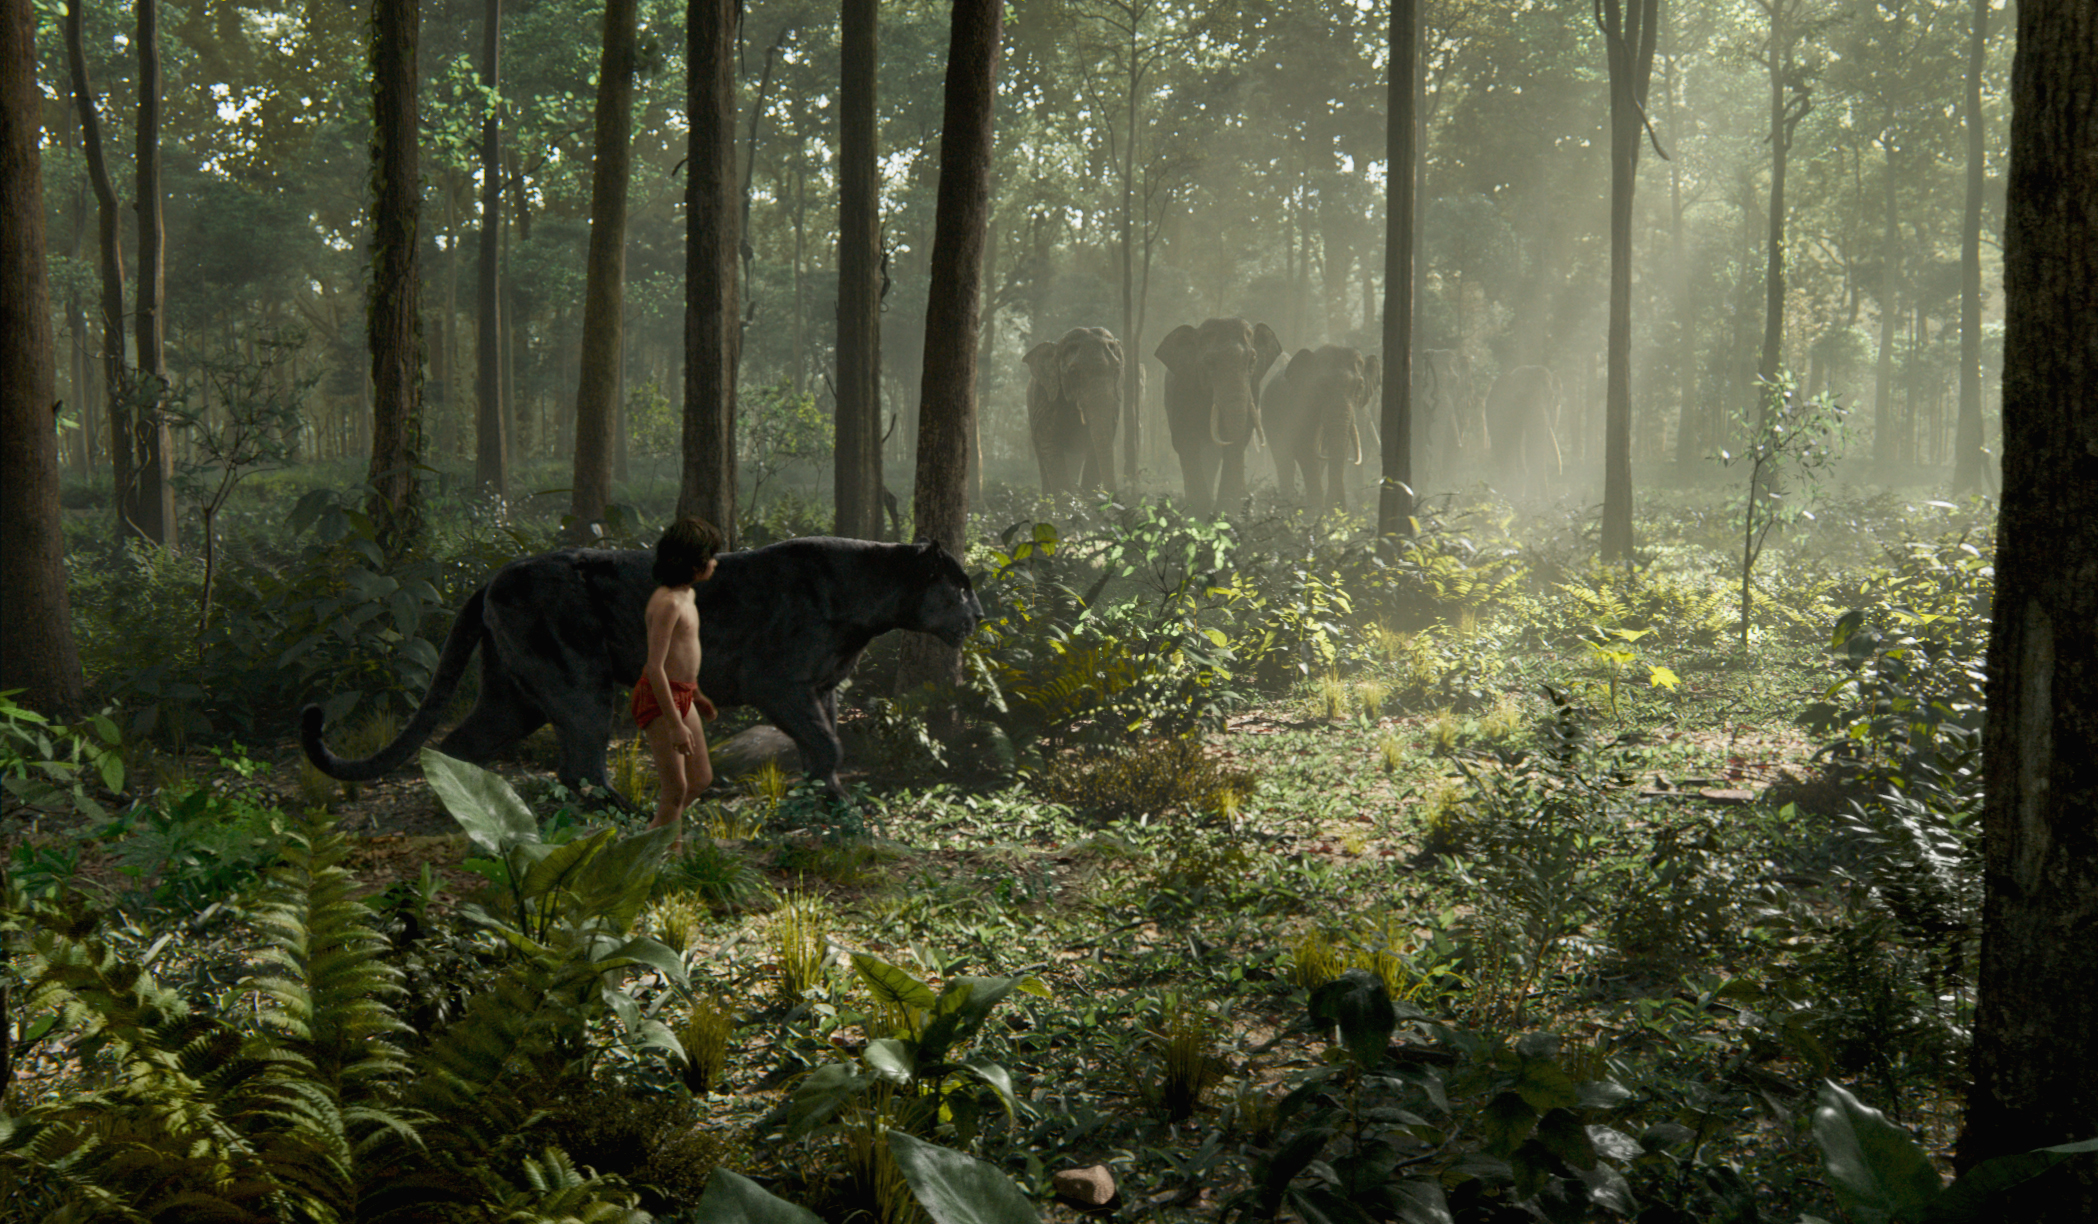 THE JUNGLE BOOK - (L-R) MOWGLI and BAGHEERA. ©2016 Disney Enterprises, Inc. All Rights Reserved.